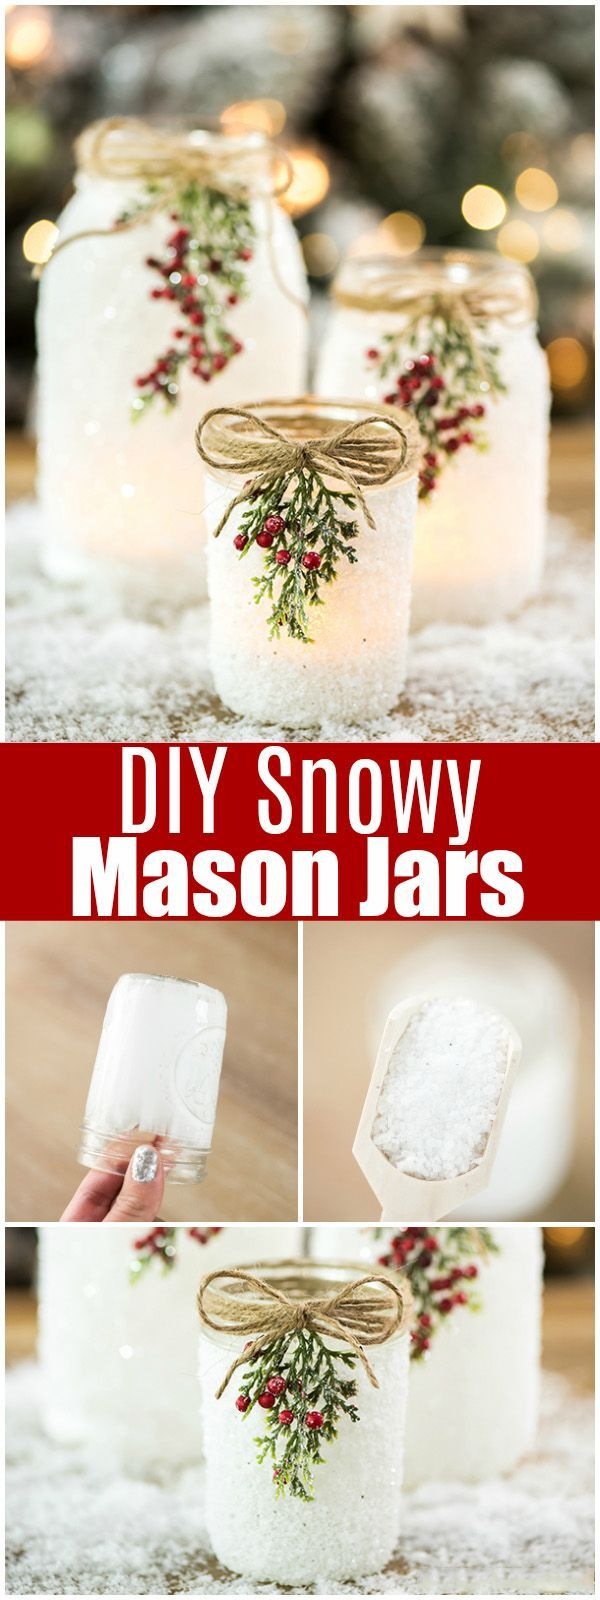 Diy snowy mason jars christmas decorations pinterest christmas